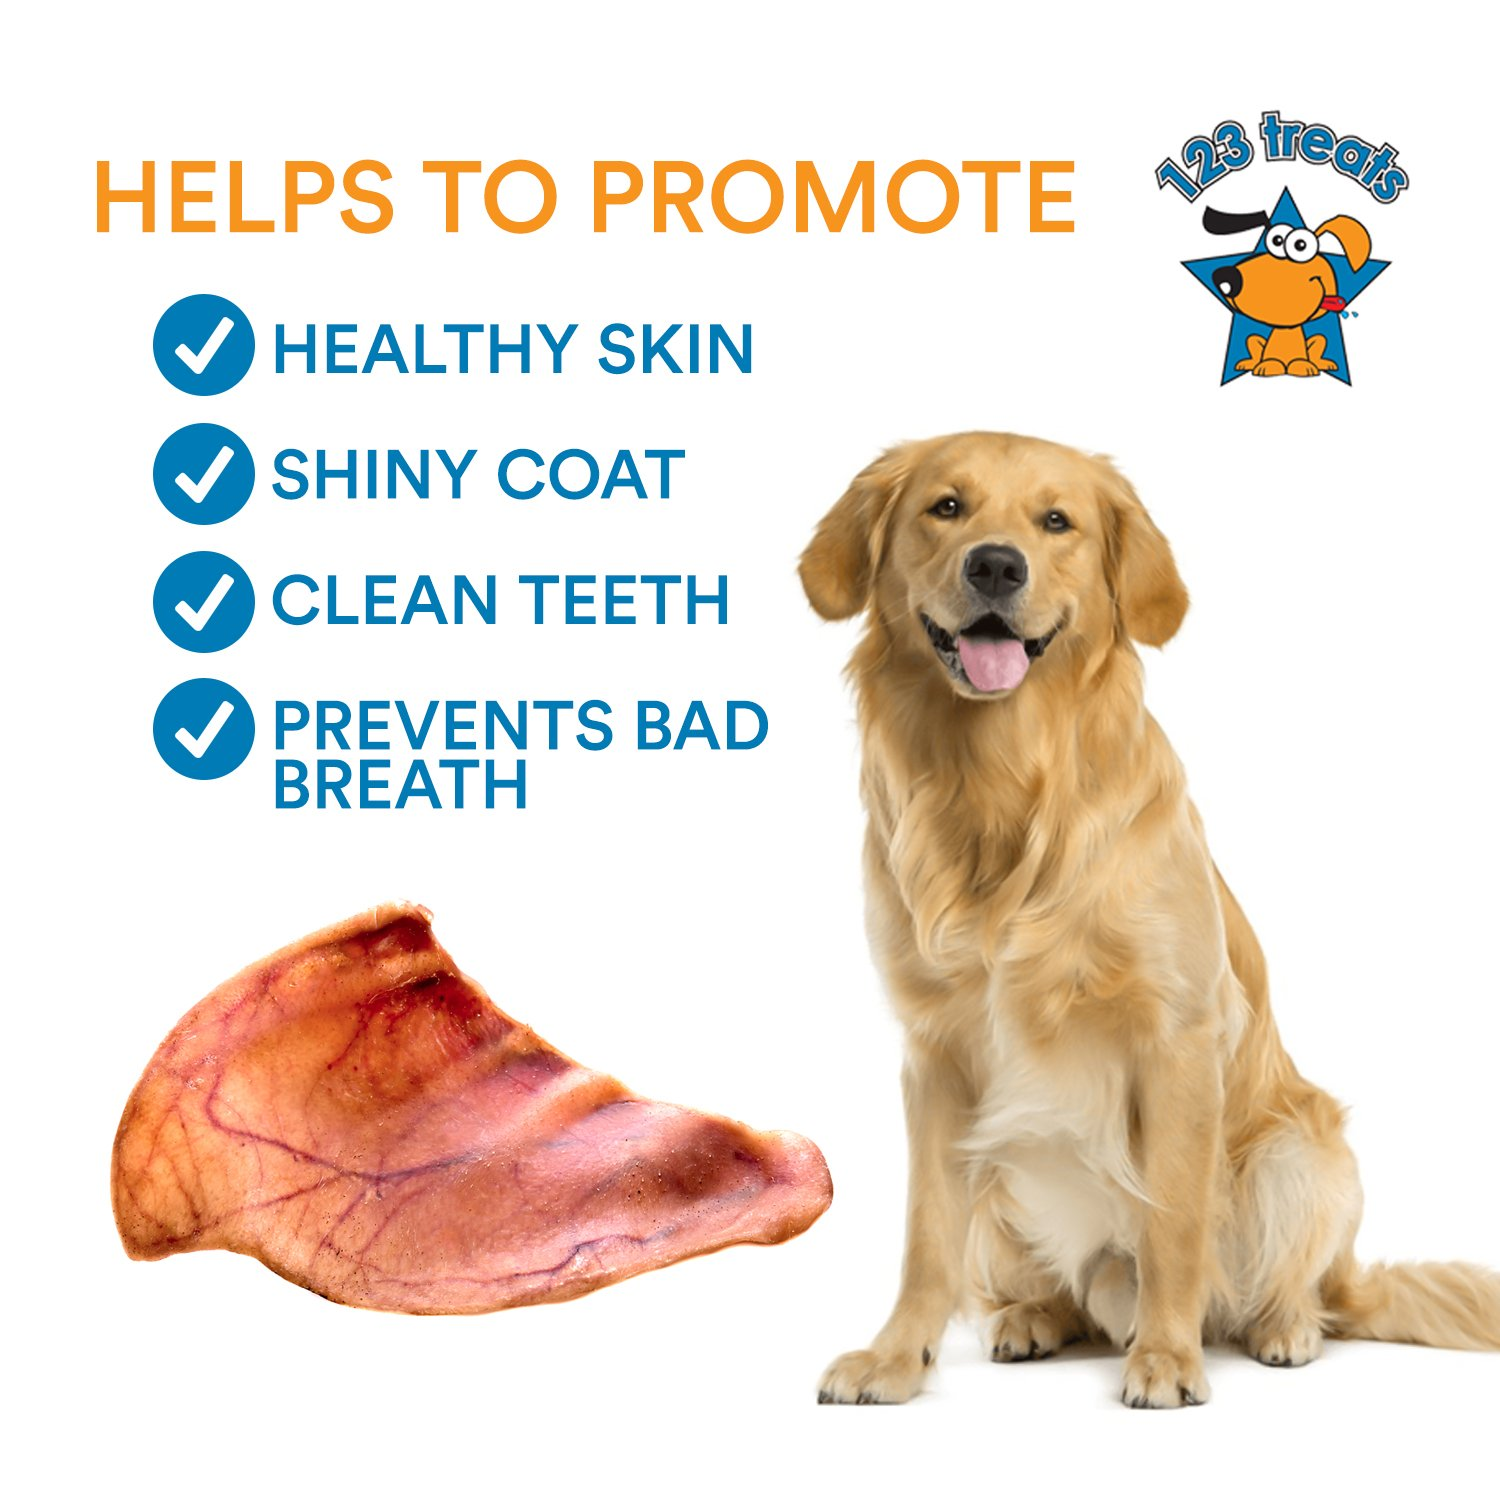 123 Treats Pig Ears for Dogs   Quality Pork Dog Chews 100% Natural Pork Ears Full of Protein for Your Pet (Brazil, 30 Count) by 123 Treats (Image #5)